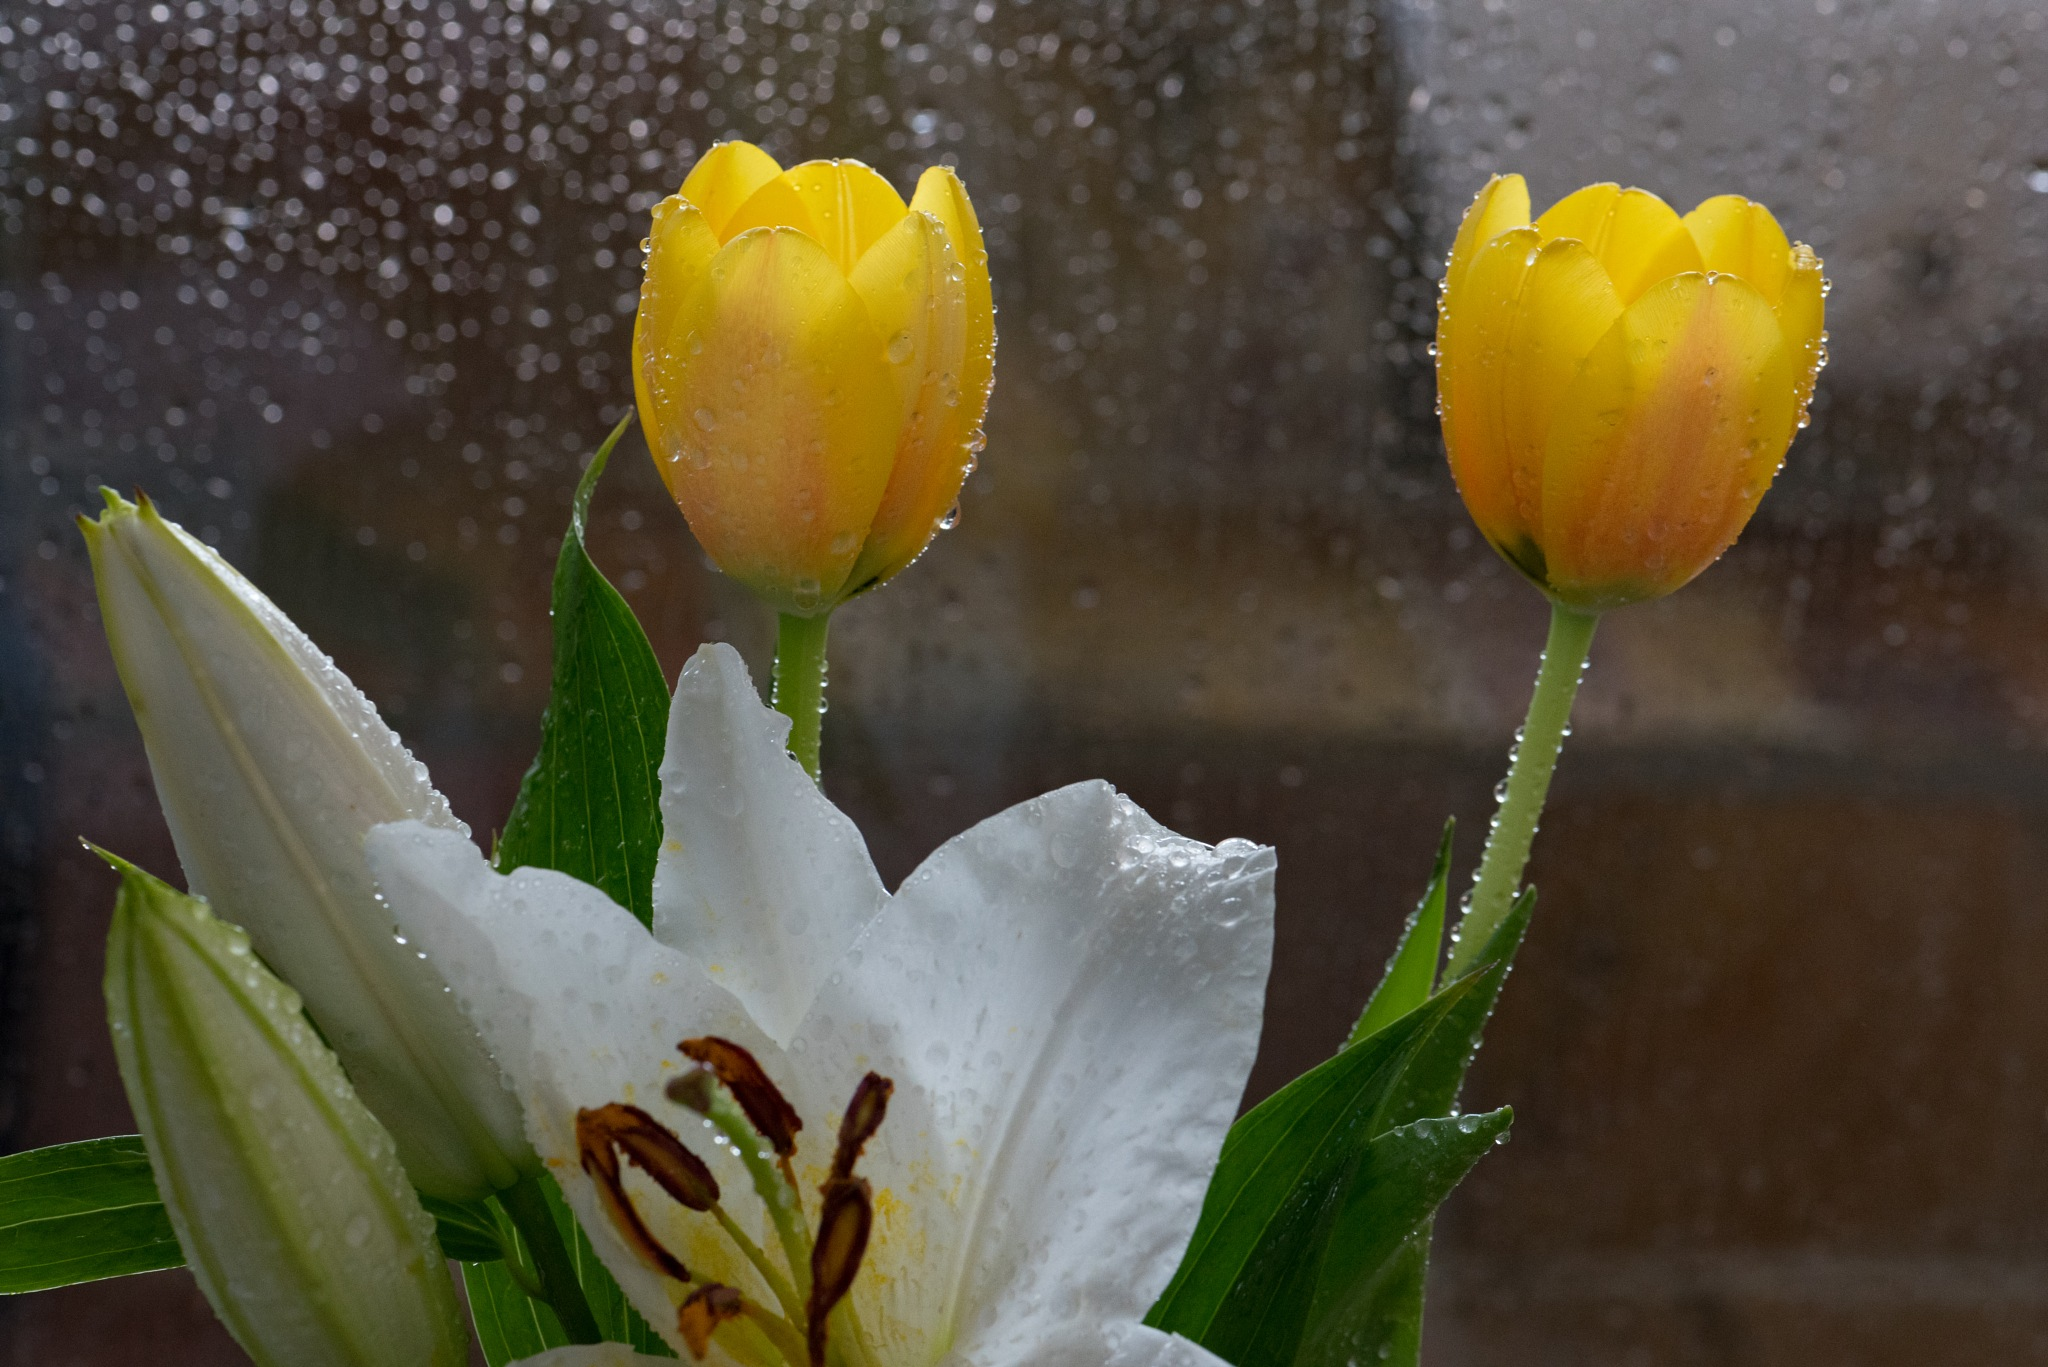 MORE FLOWERS IN THE SHOWER by DrJohnHodgson